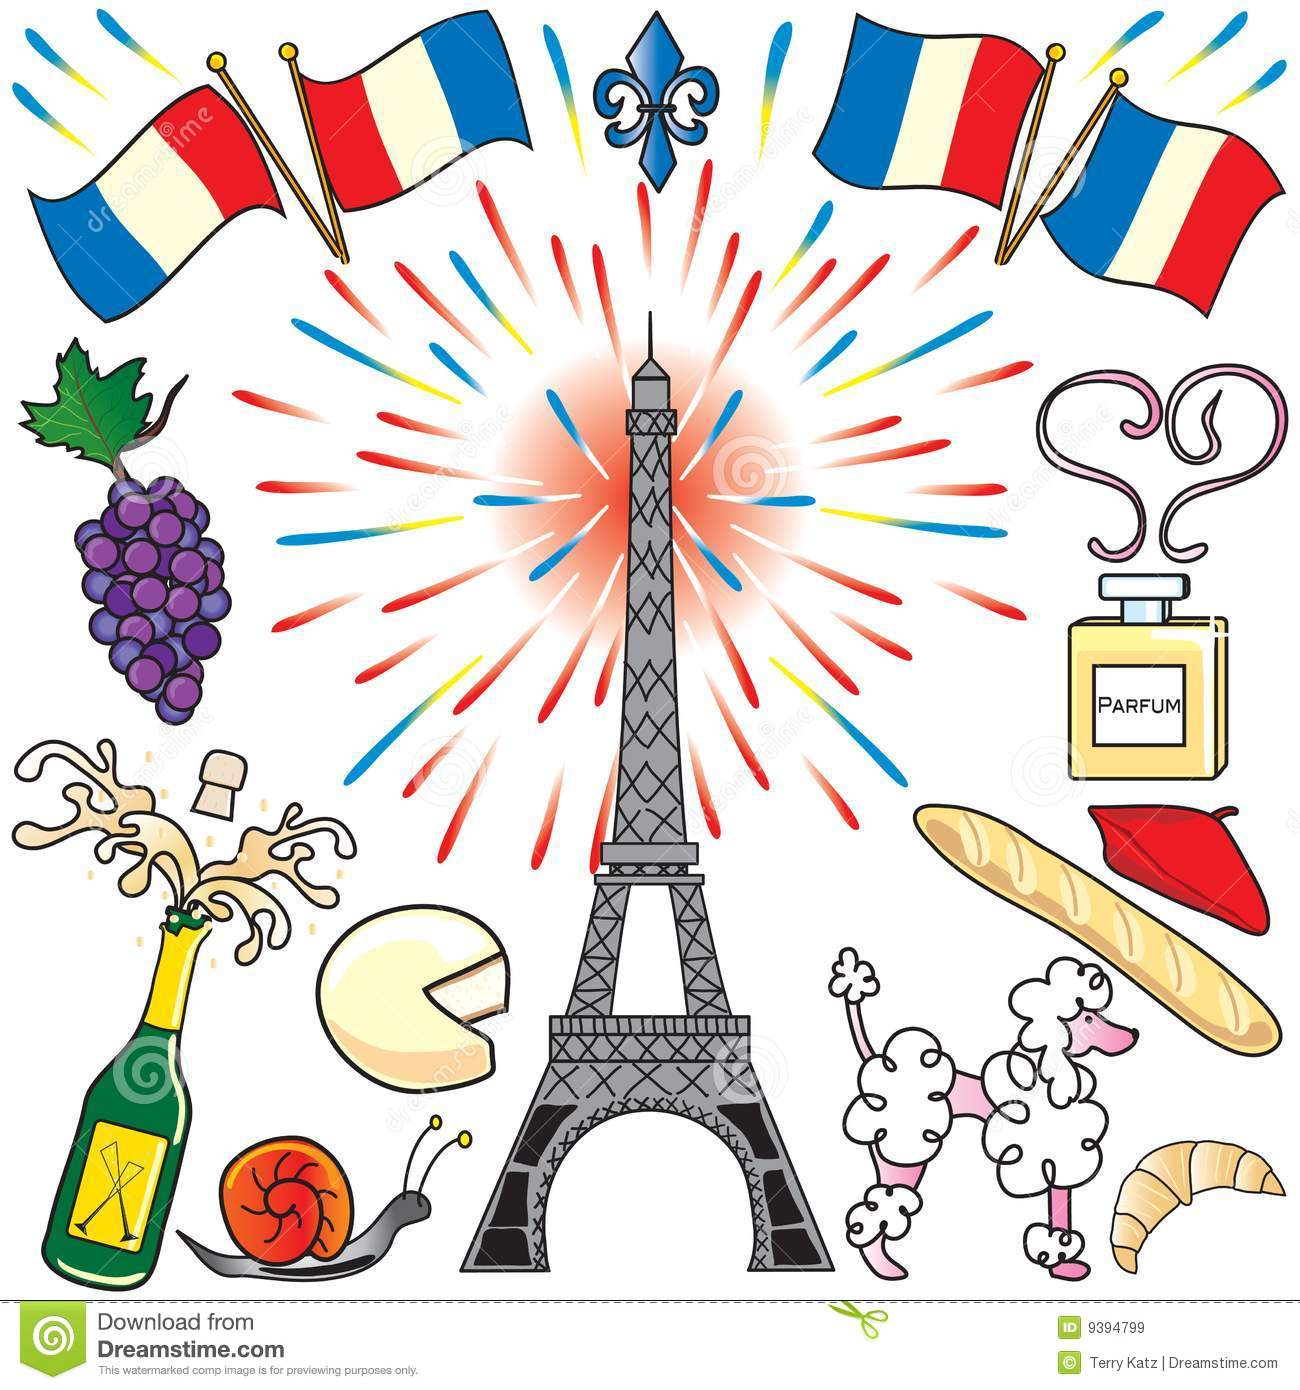 French clipart Clipart France Download clipart Download